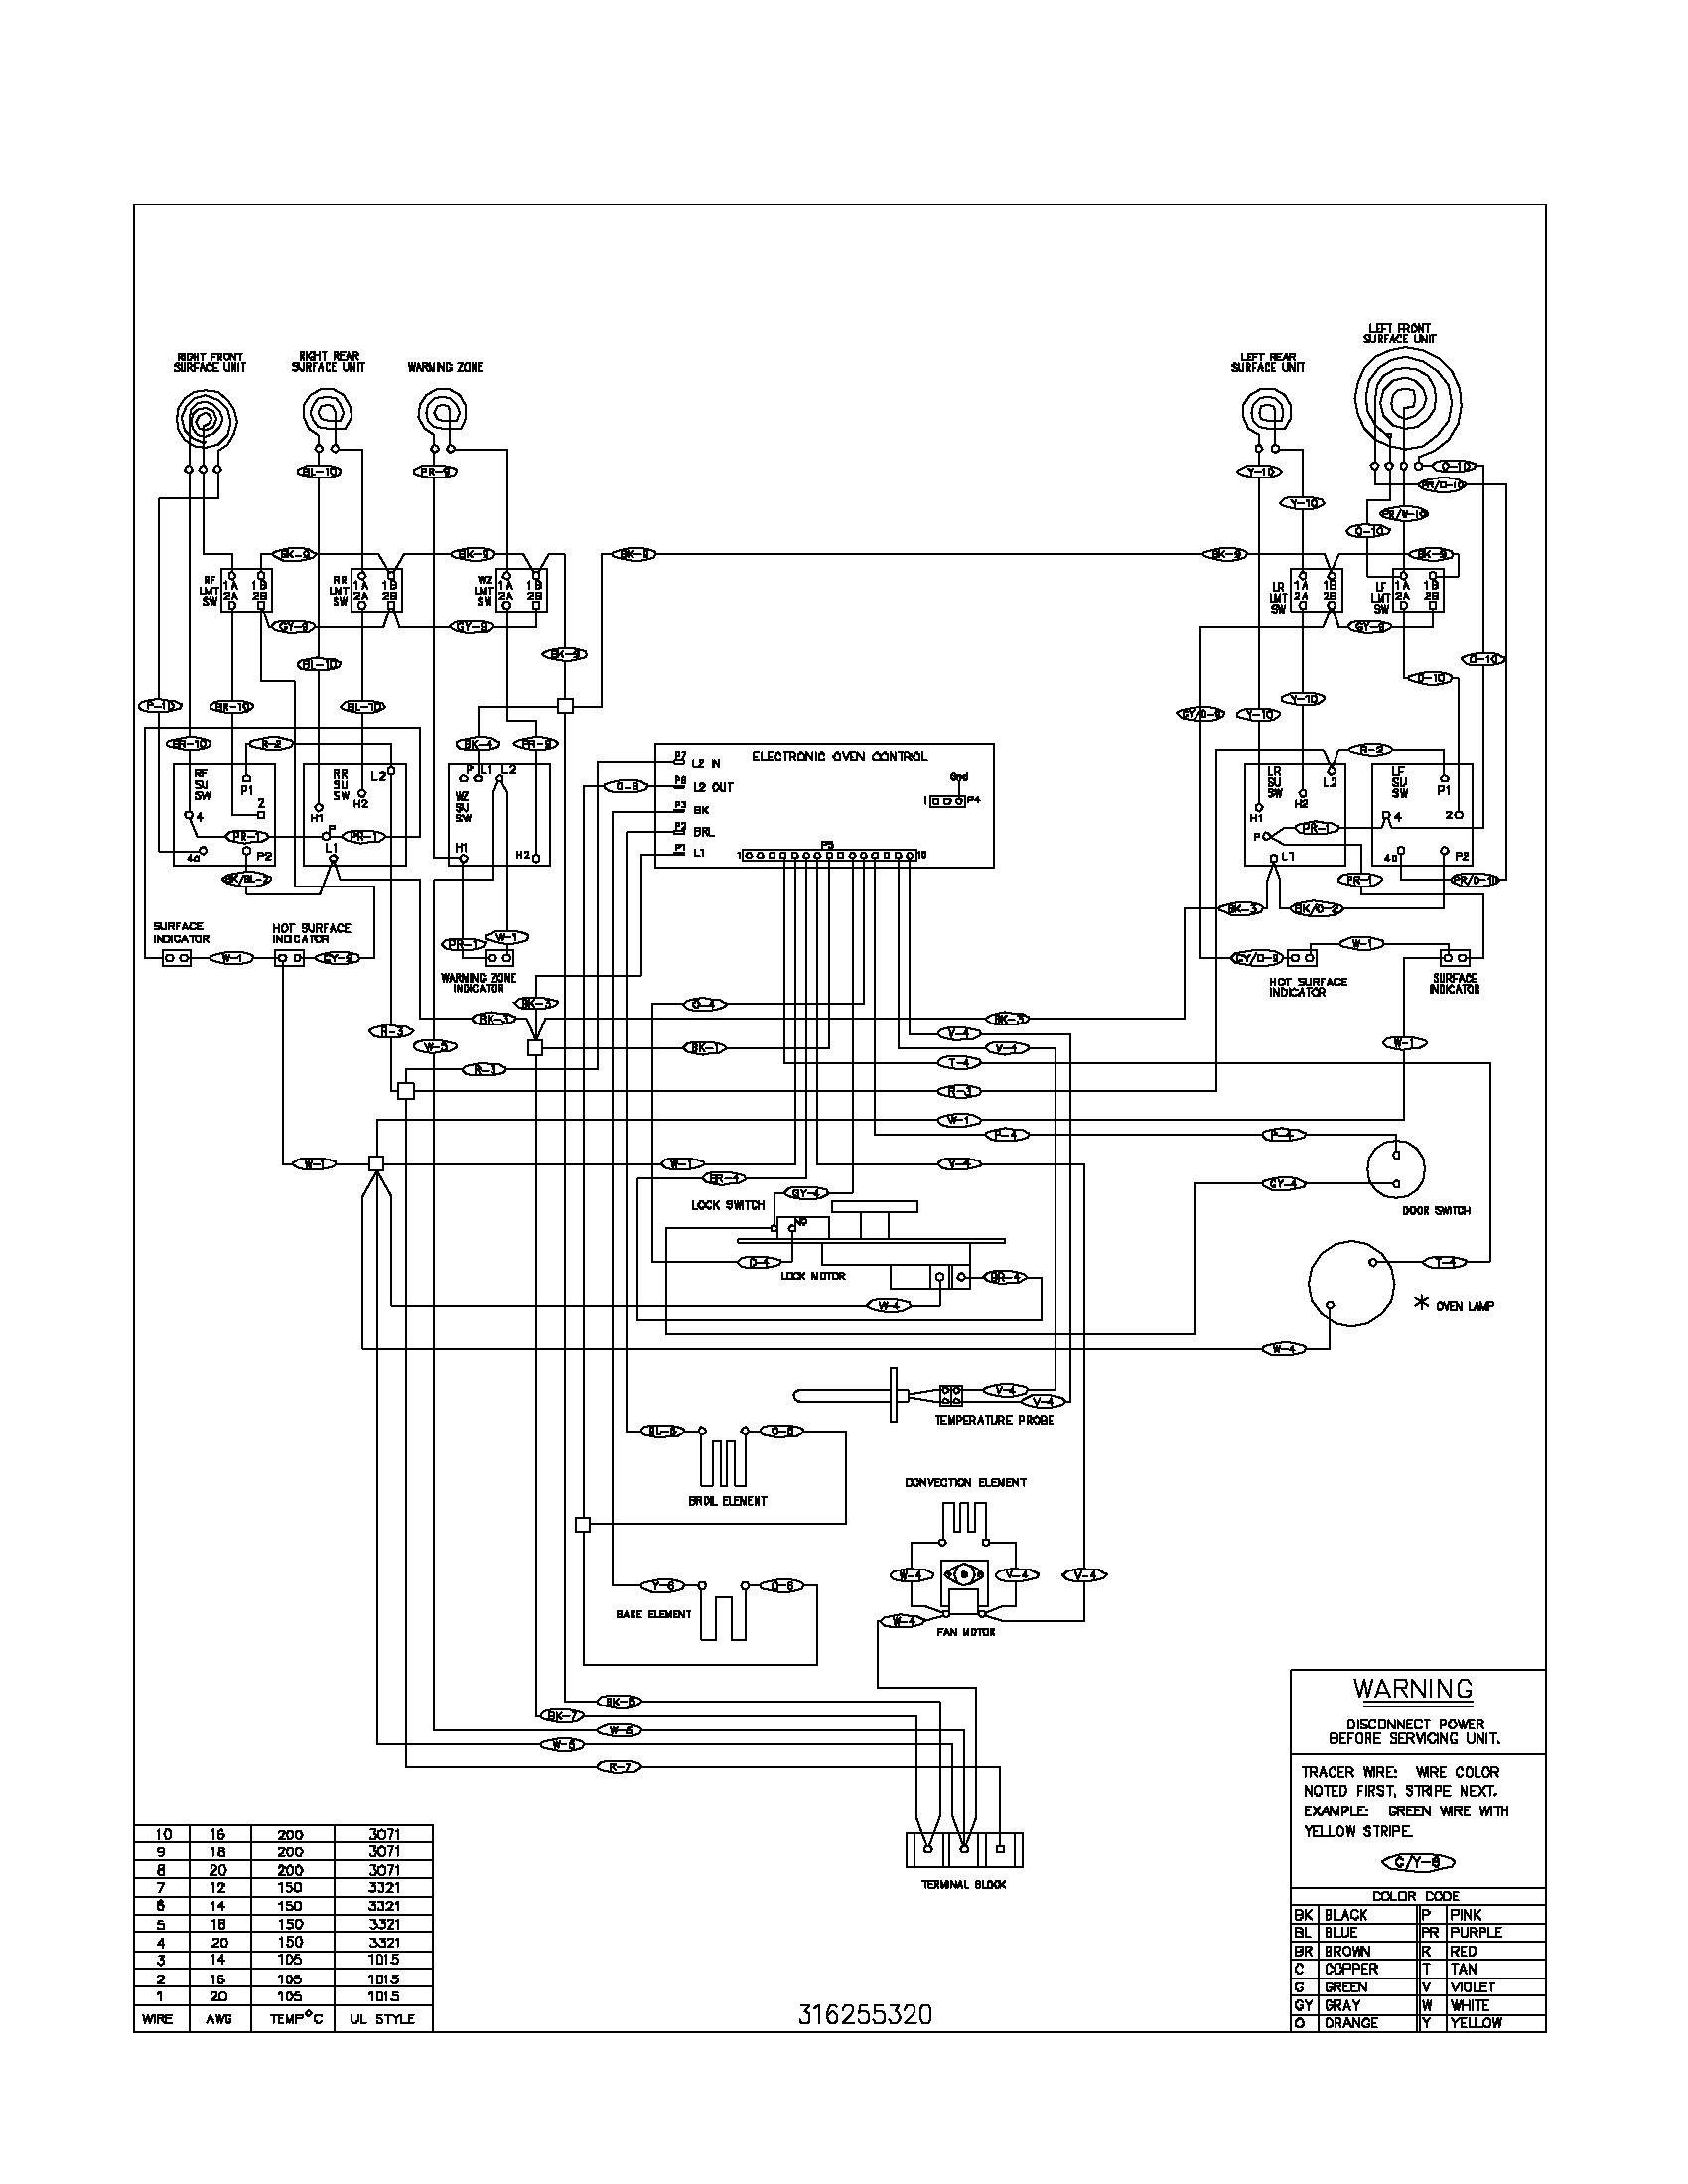 Hotpoint Dryer Wiring Schematic. Roper Dryer Schematic, Ge